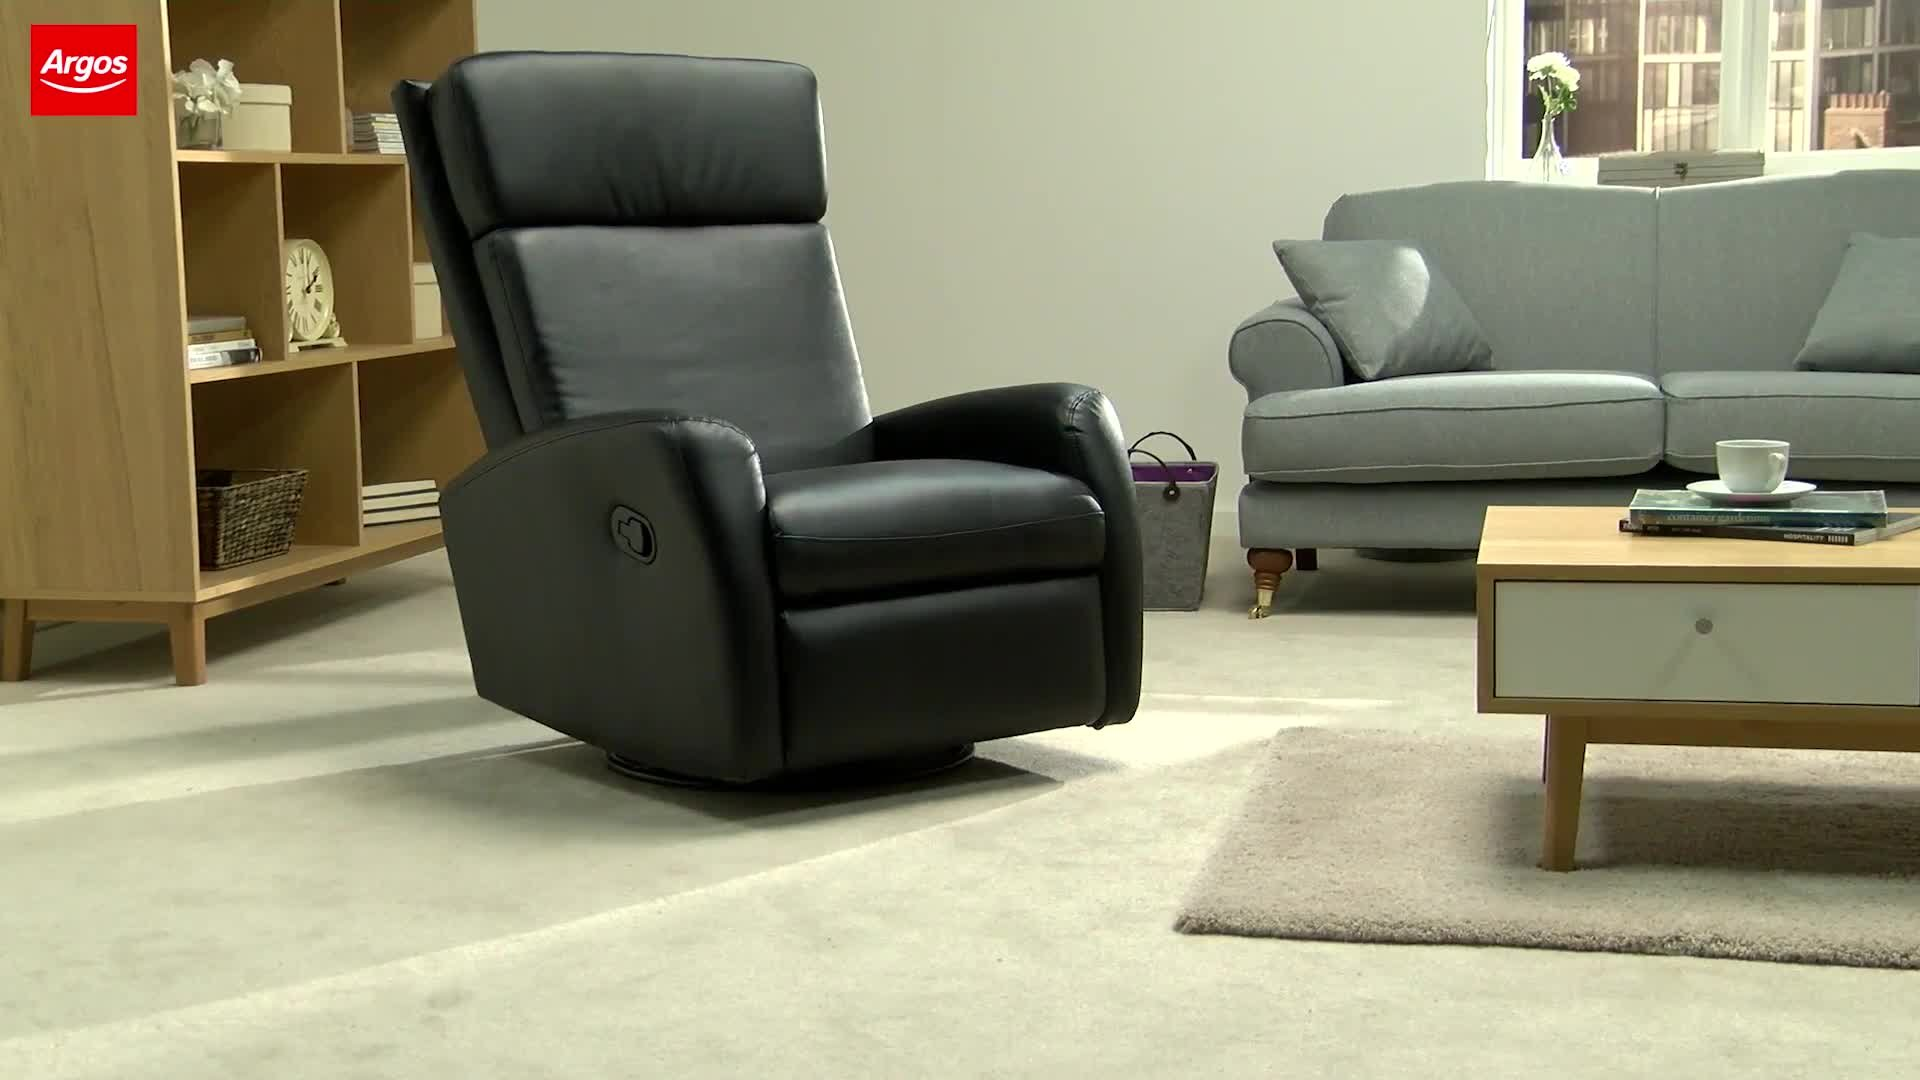 Buy Collection Rock-R-Round Leather Eff Recliner Chair - Black at Argos.co.uk - Your Online Shop for Armchairs and chairs Living room furniture ... & Buy Collection Rock-R-Round Leather Eff Recliner Chair - Black at ... islam-shia.org